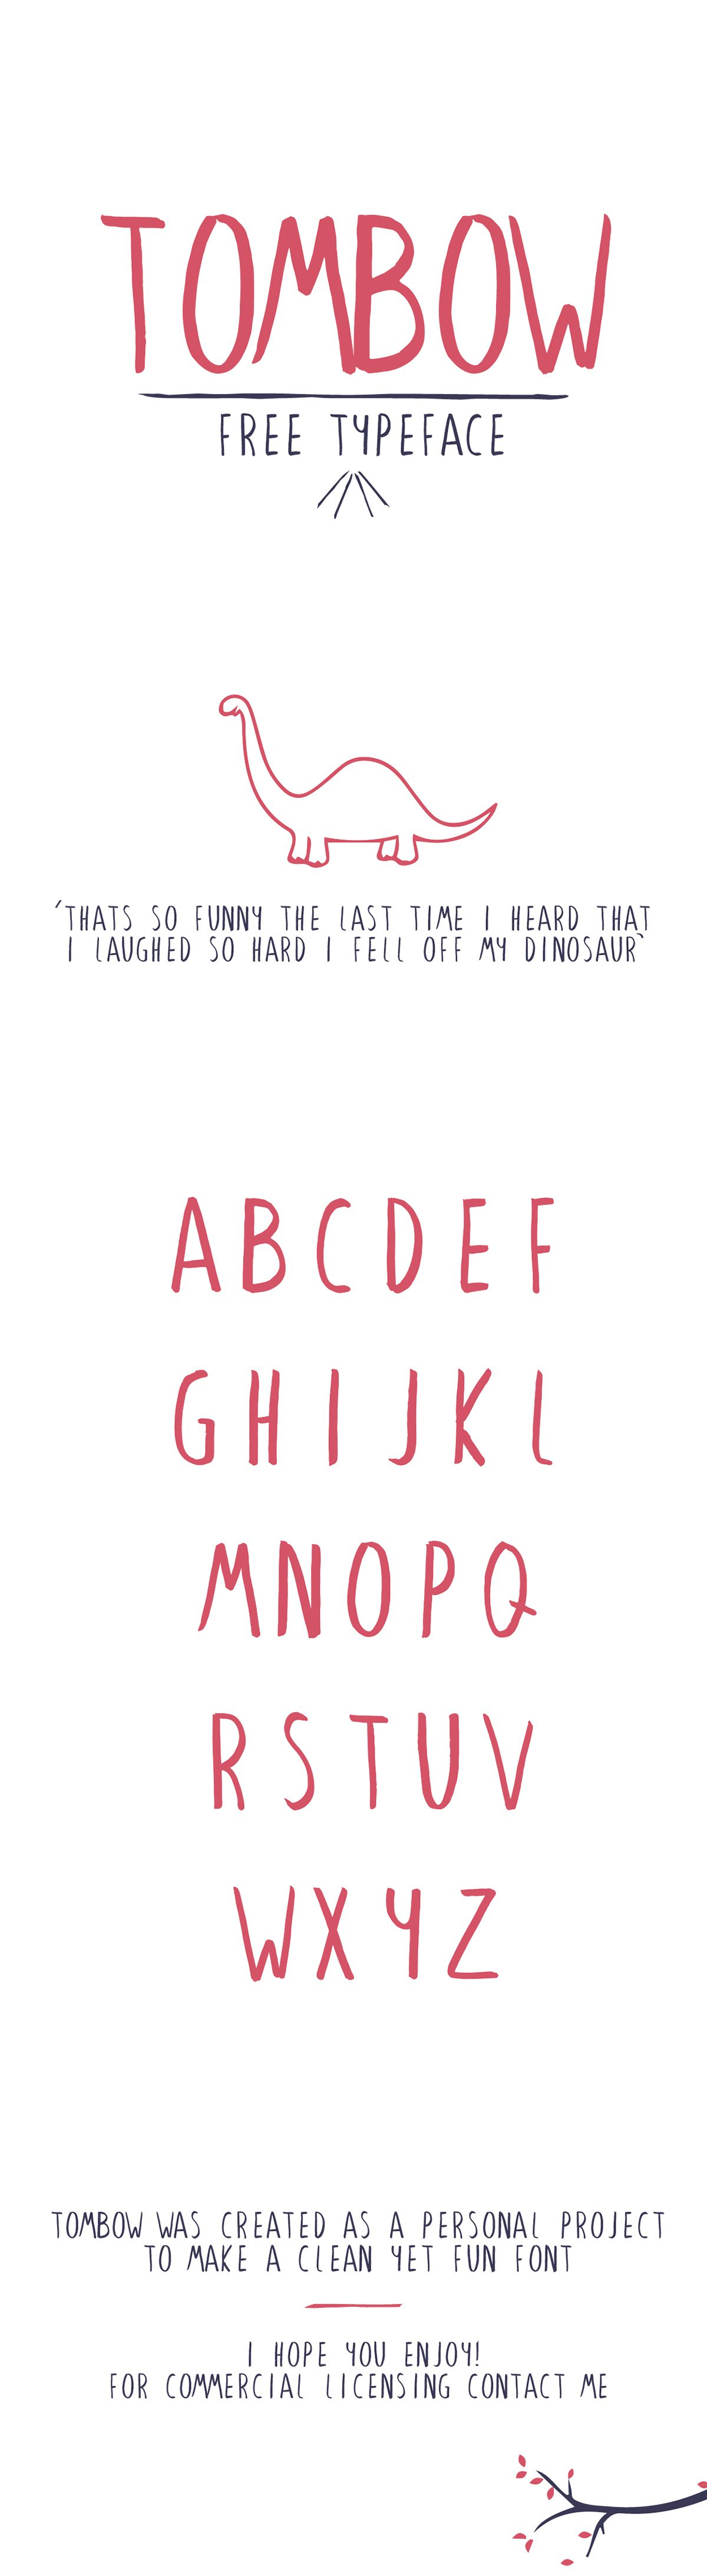 tombow font